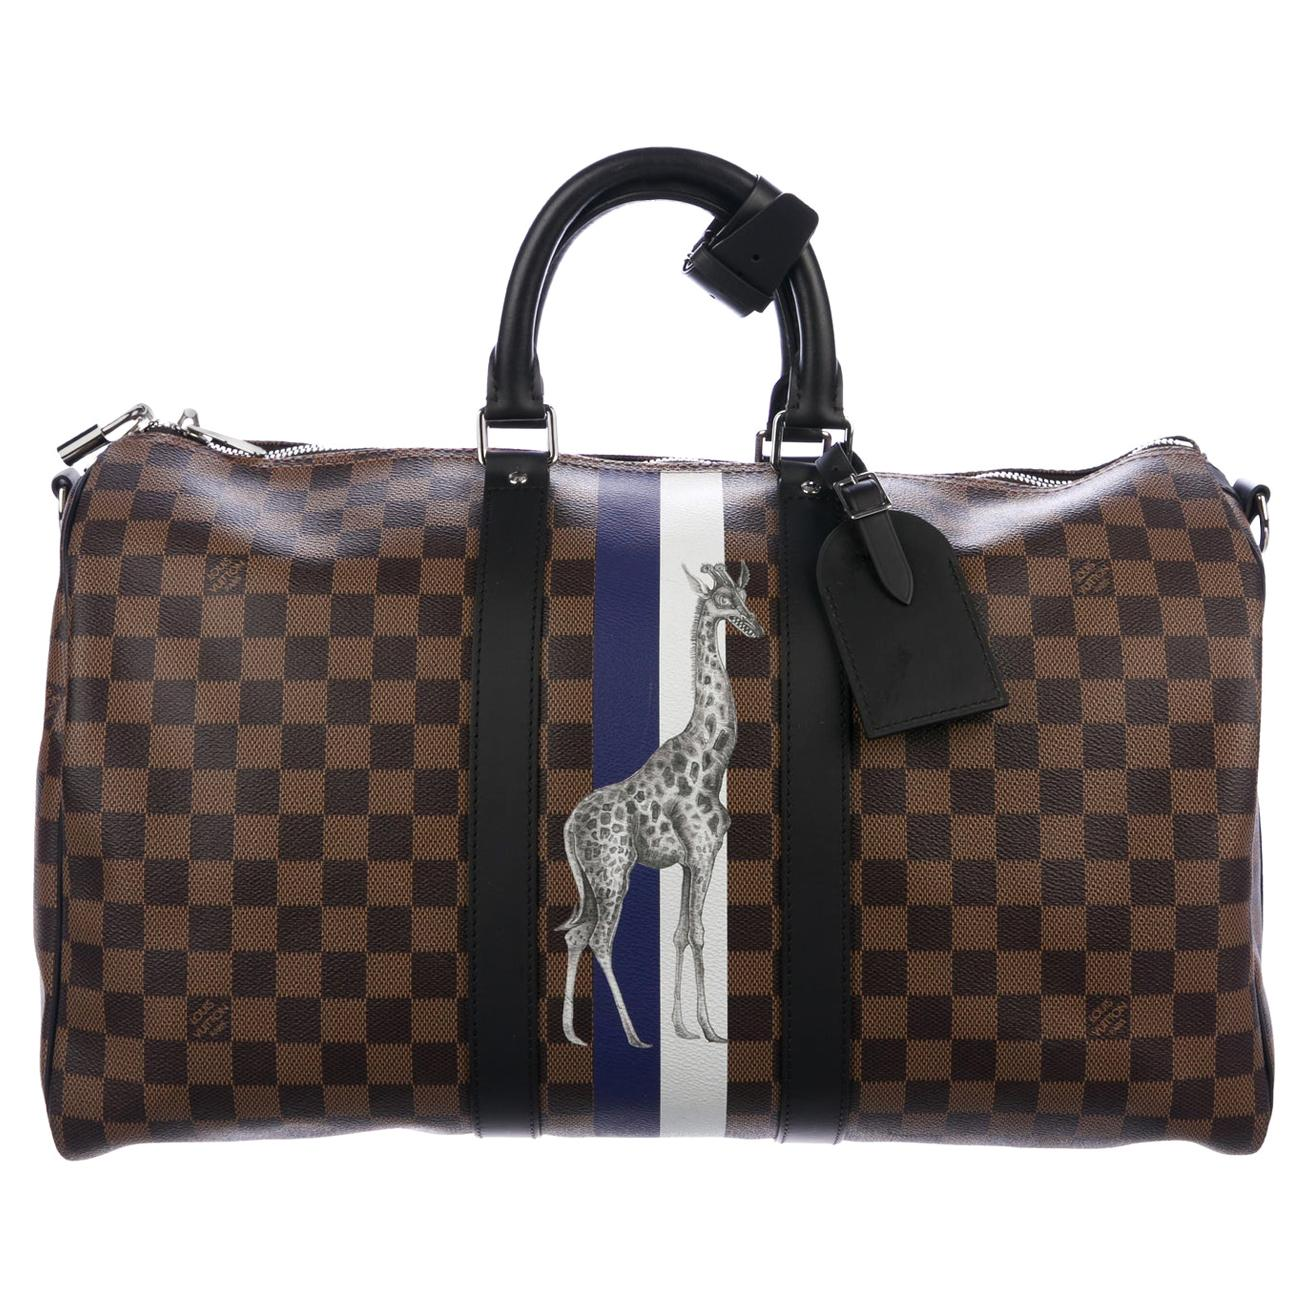 14b422b17 Vintage Louis Vuitton Luggage and Travel Bags - 351 For Sale at 1stdibs